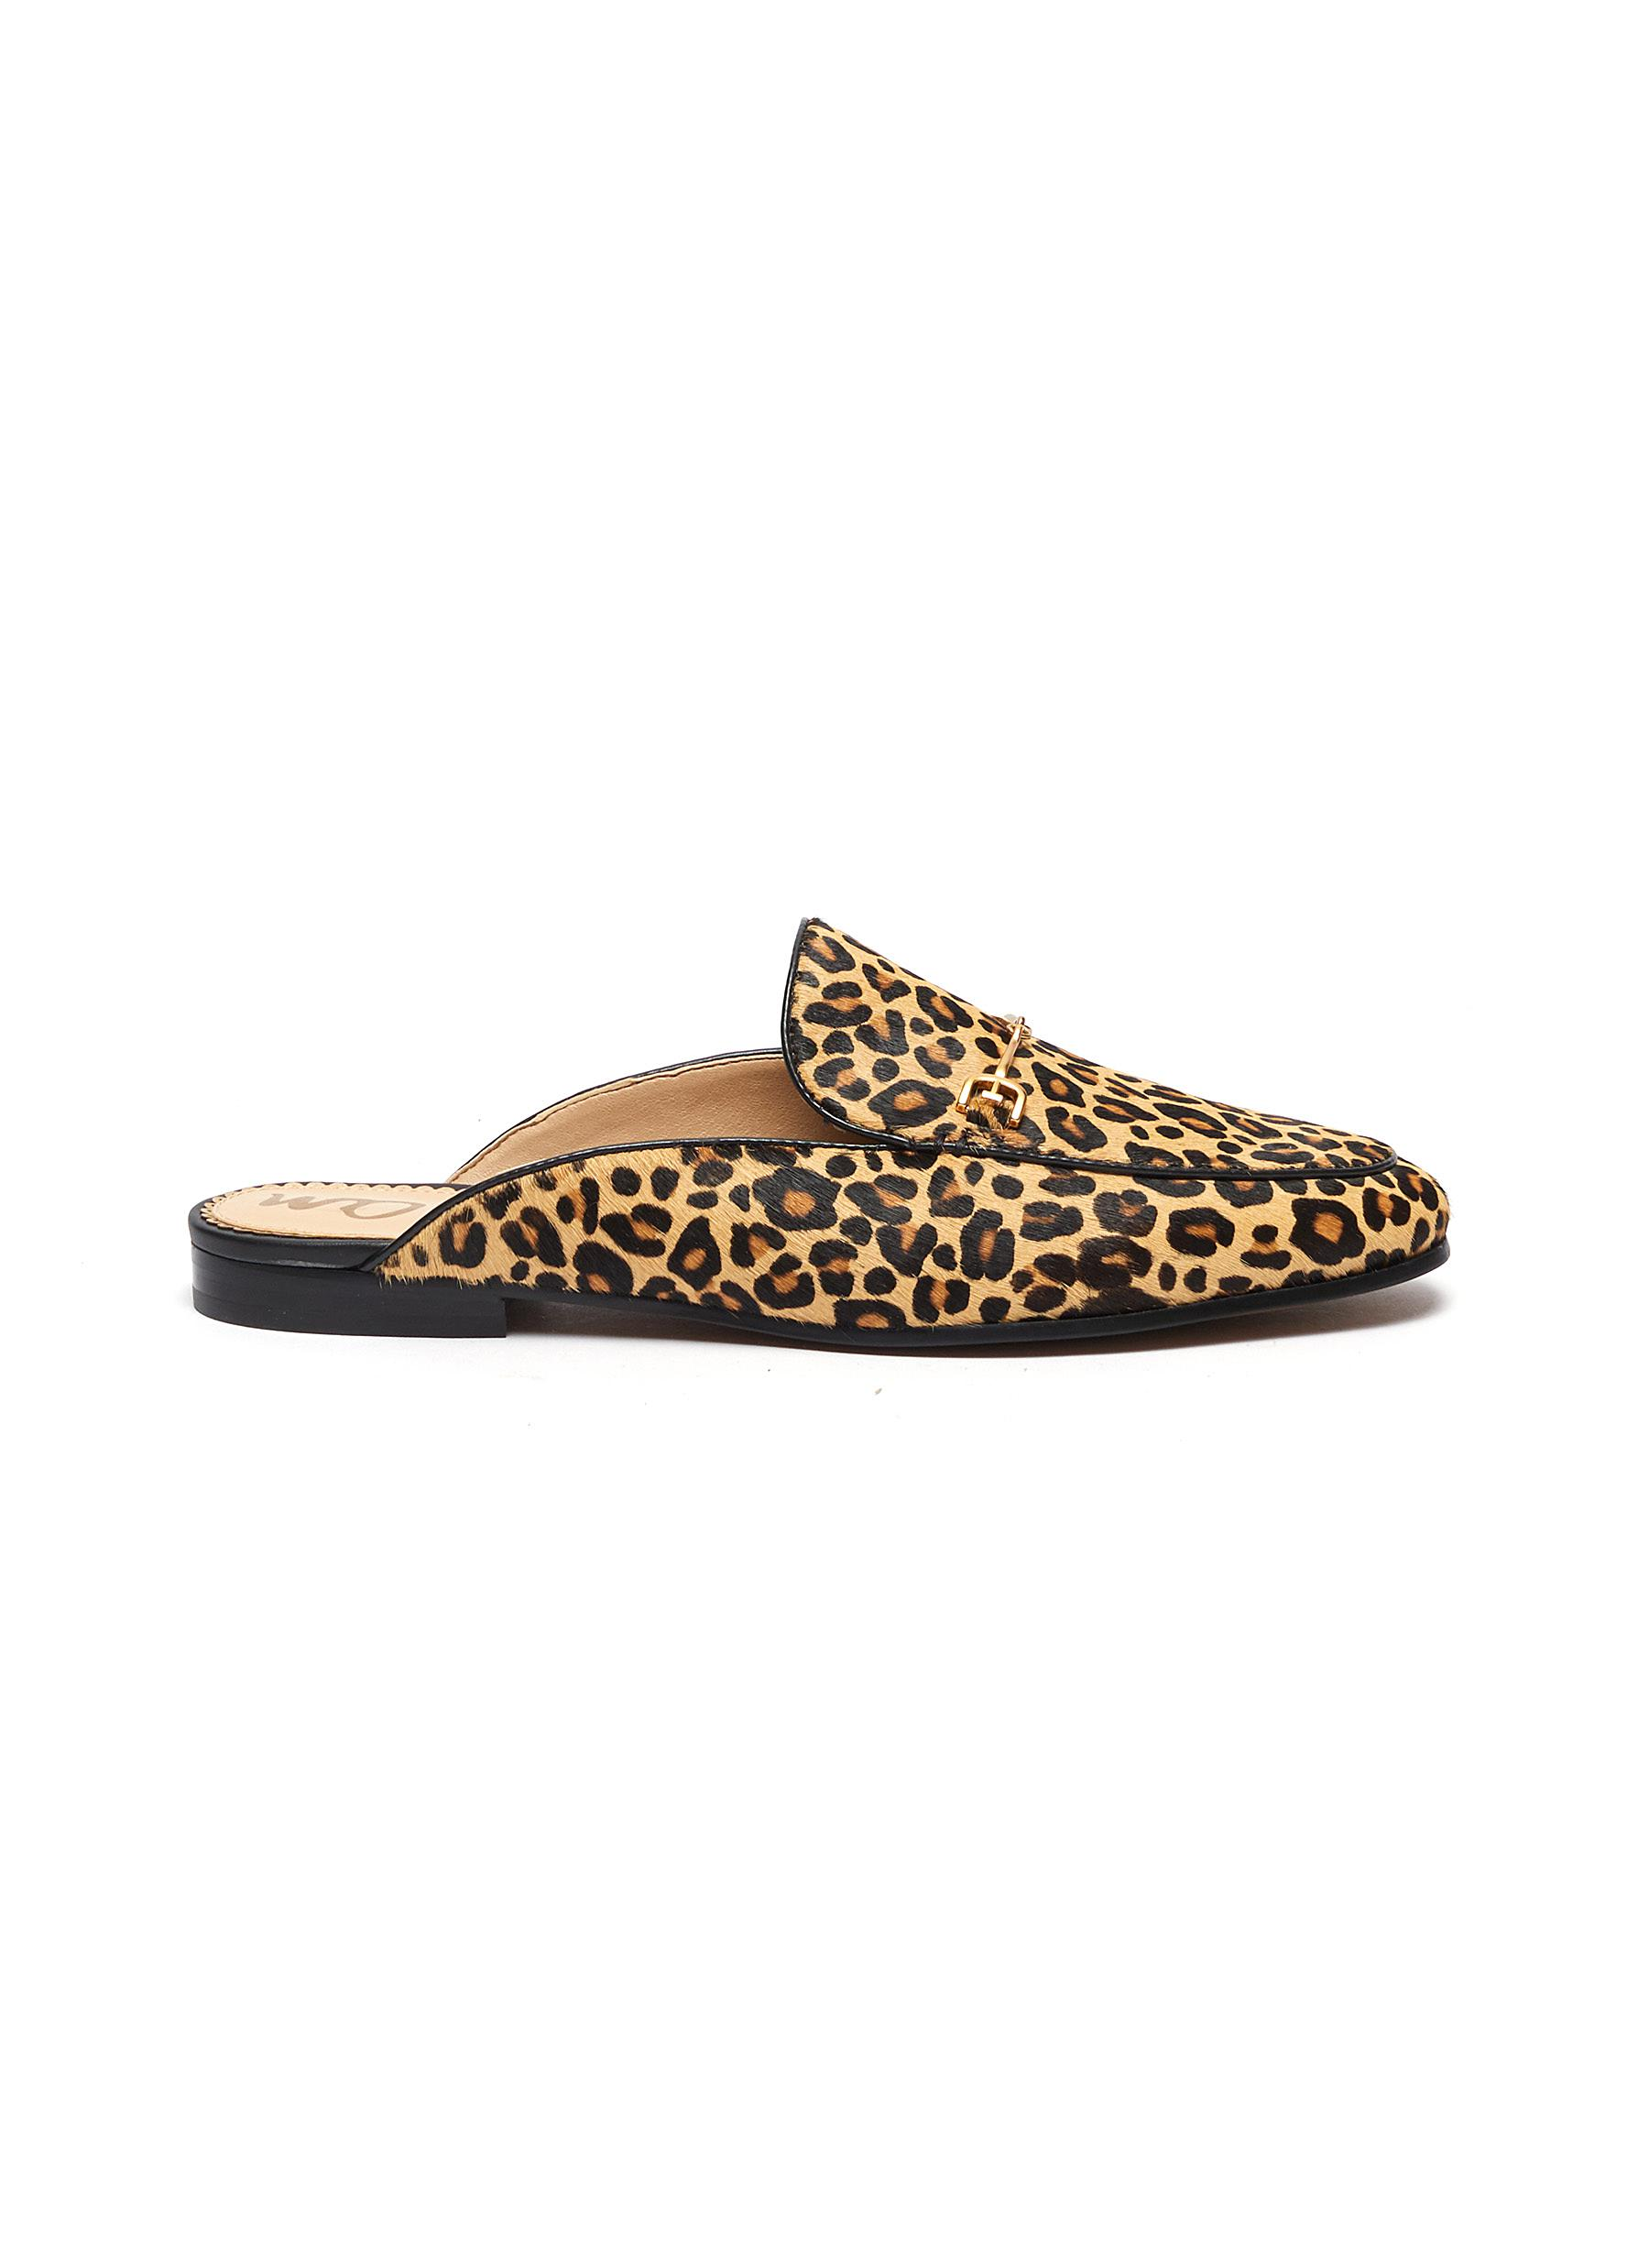 Linnie leopard print horsebit cow hair loafer slides by Sam Edelman